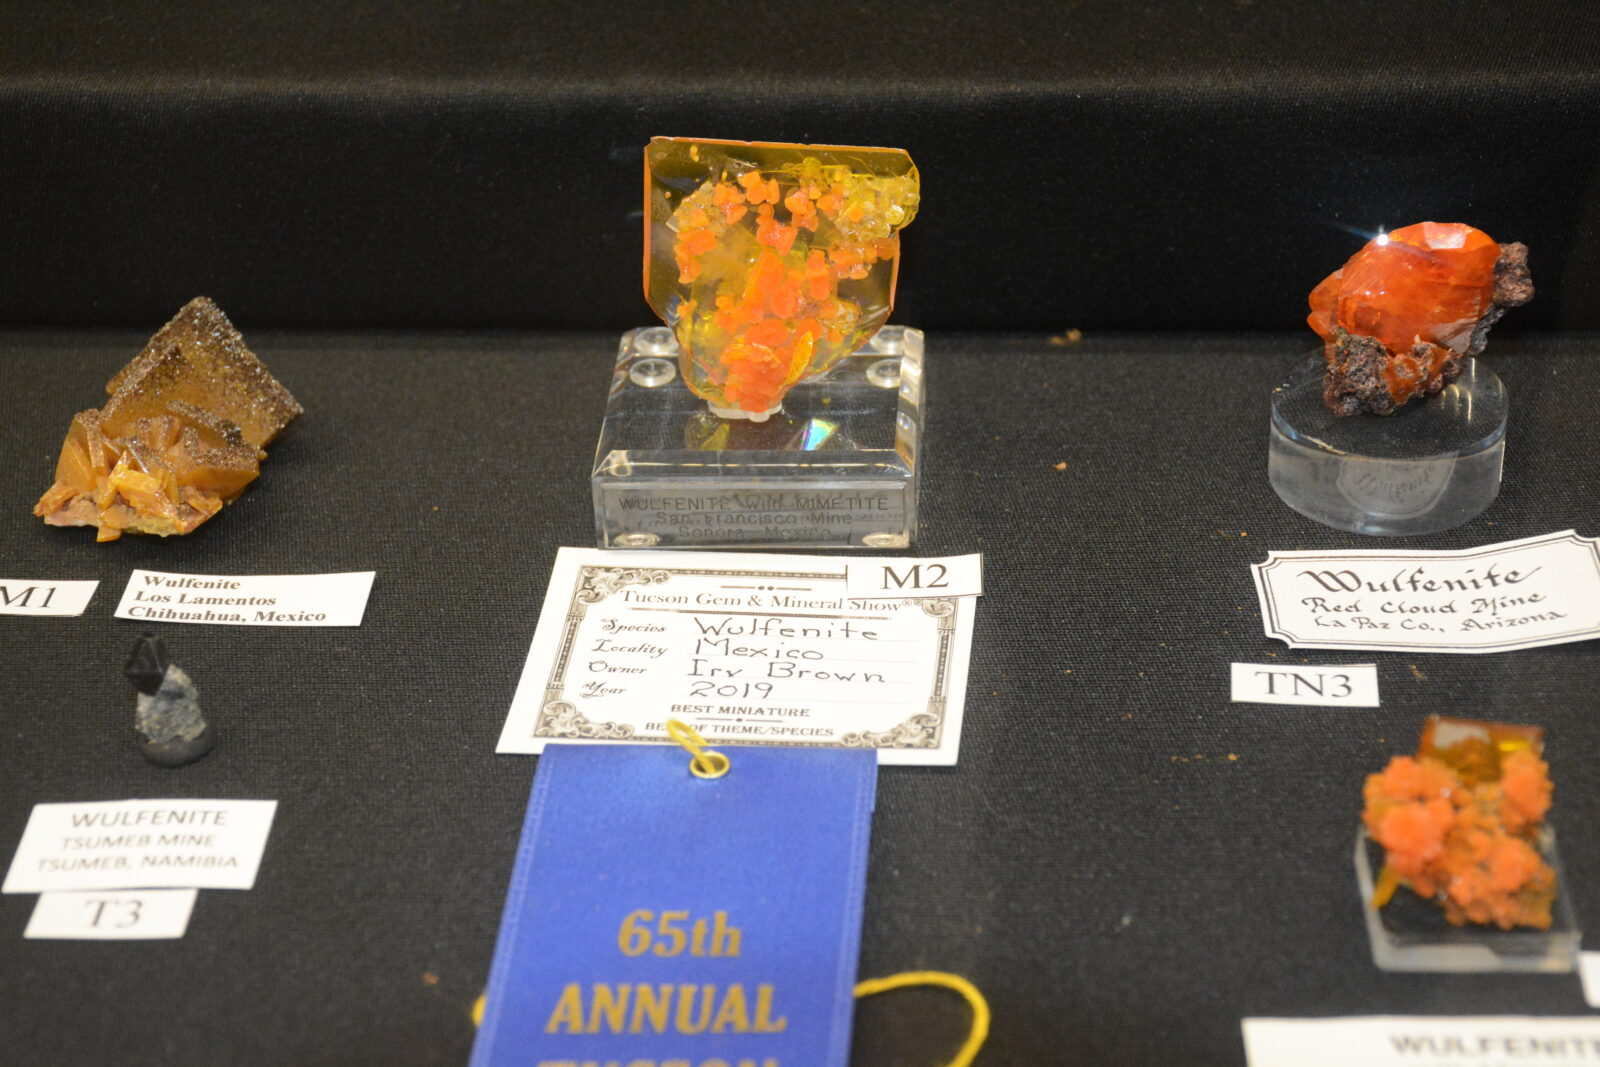 2019 TGMS Best Miniature - Best of Theme - Species winner; Irv Brown